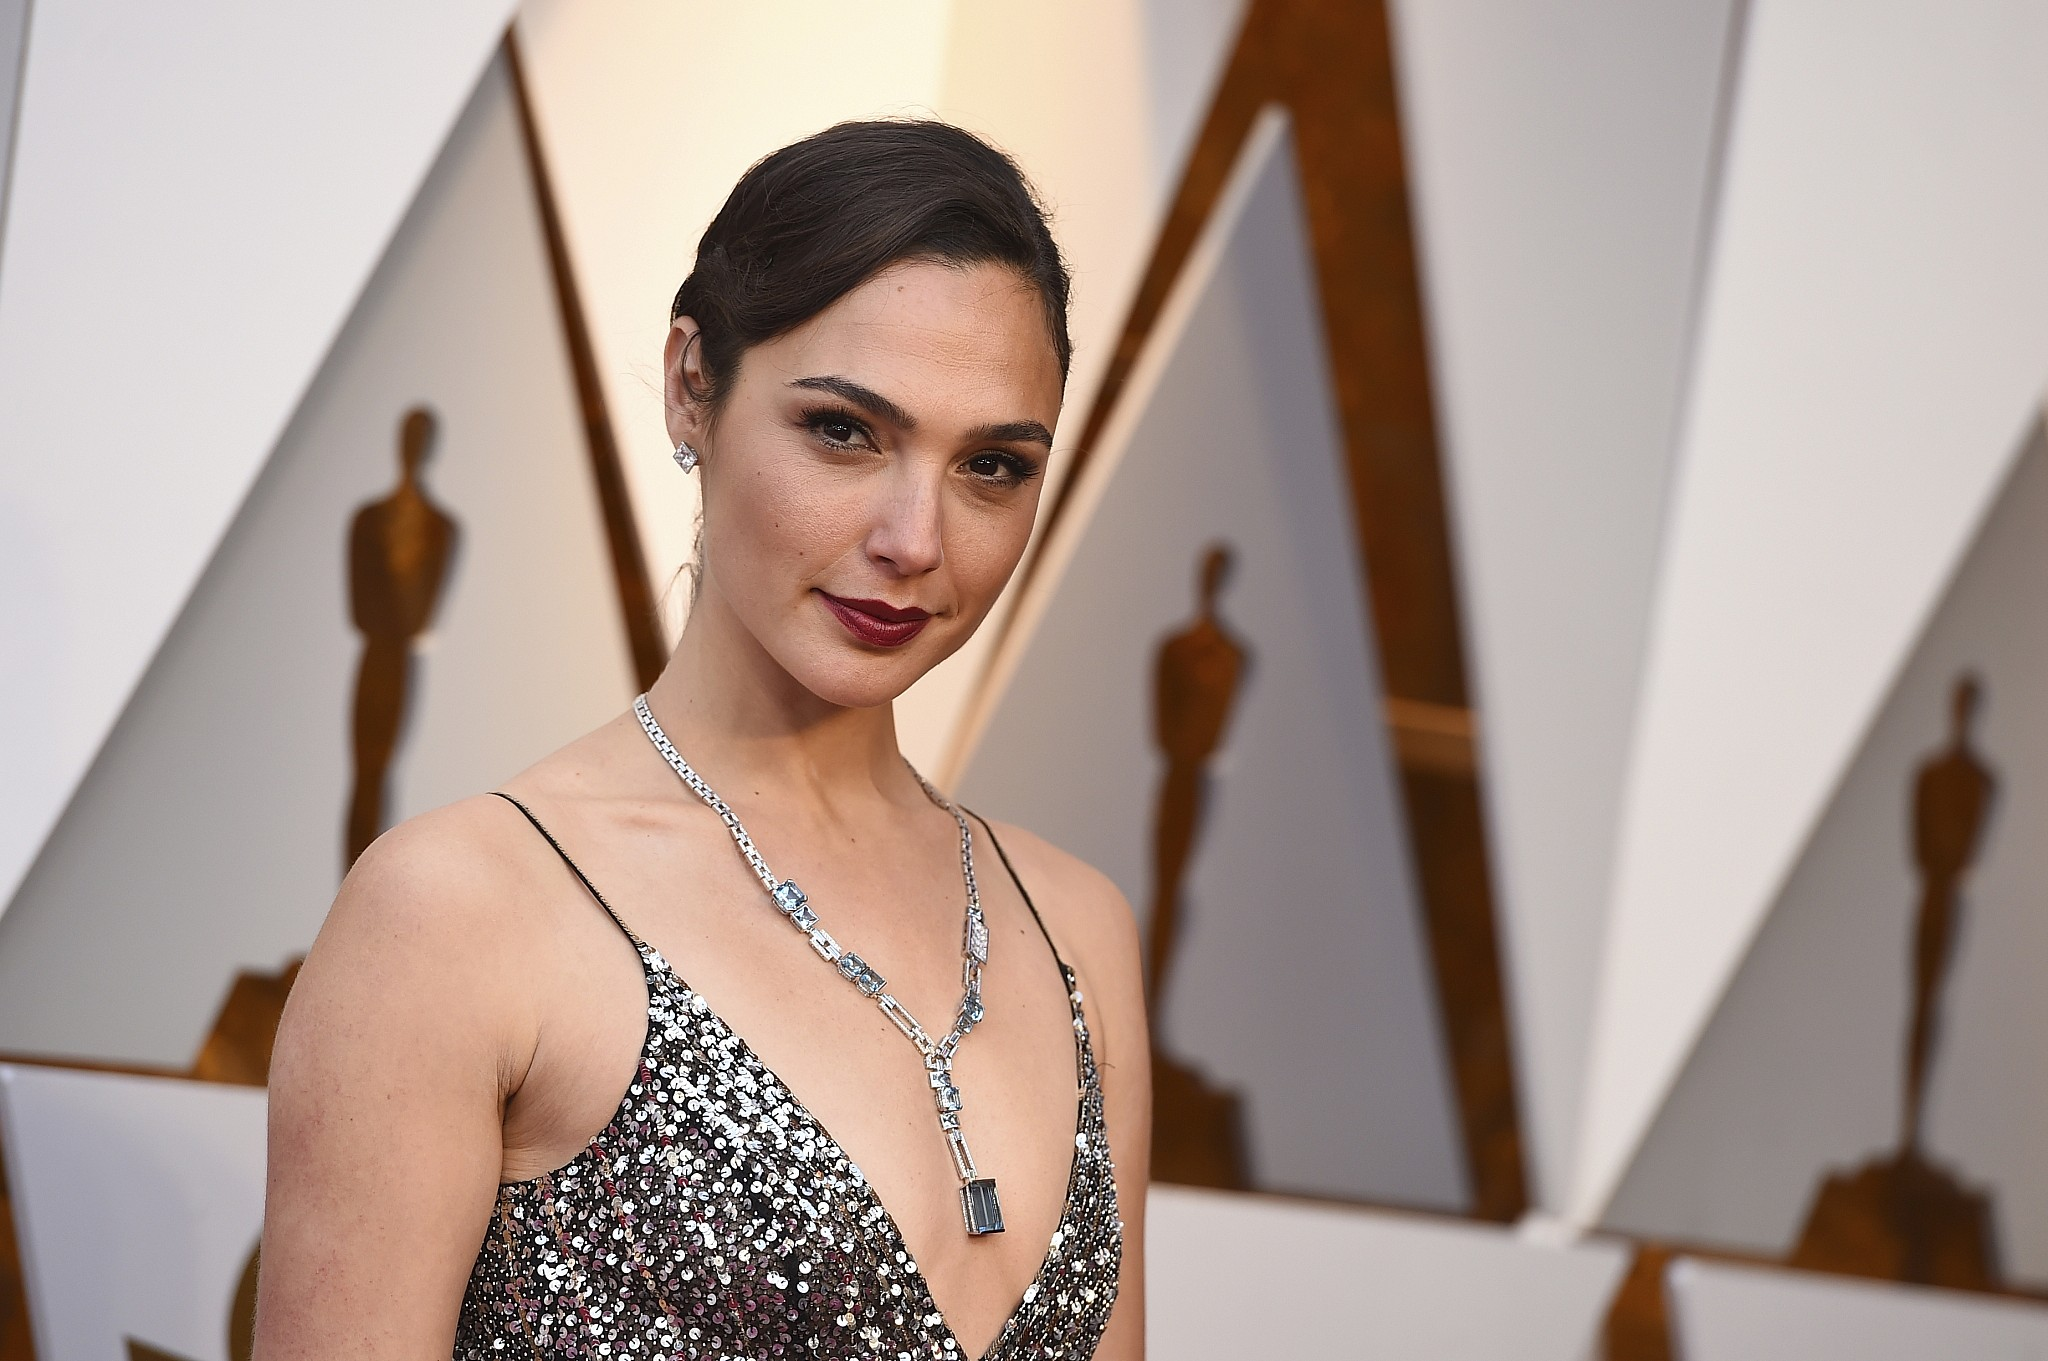 Gal Gadot arrives for the Oscars ceremony at the Dolby Theater in Los Angeles